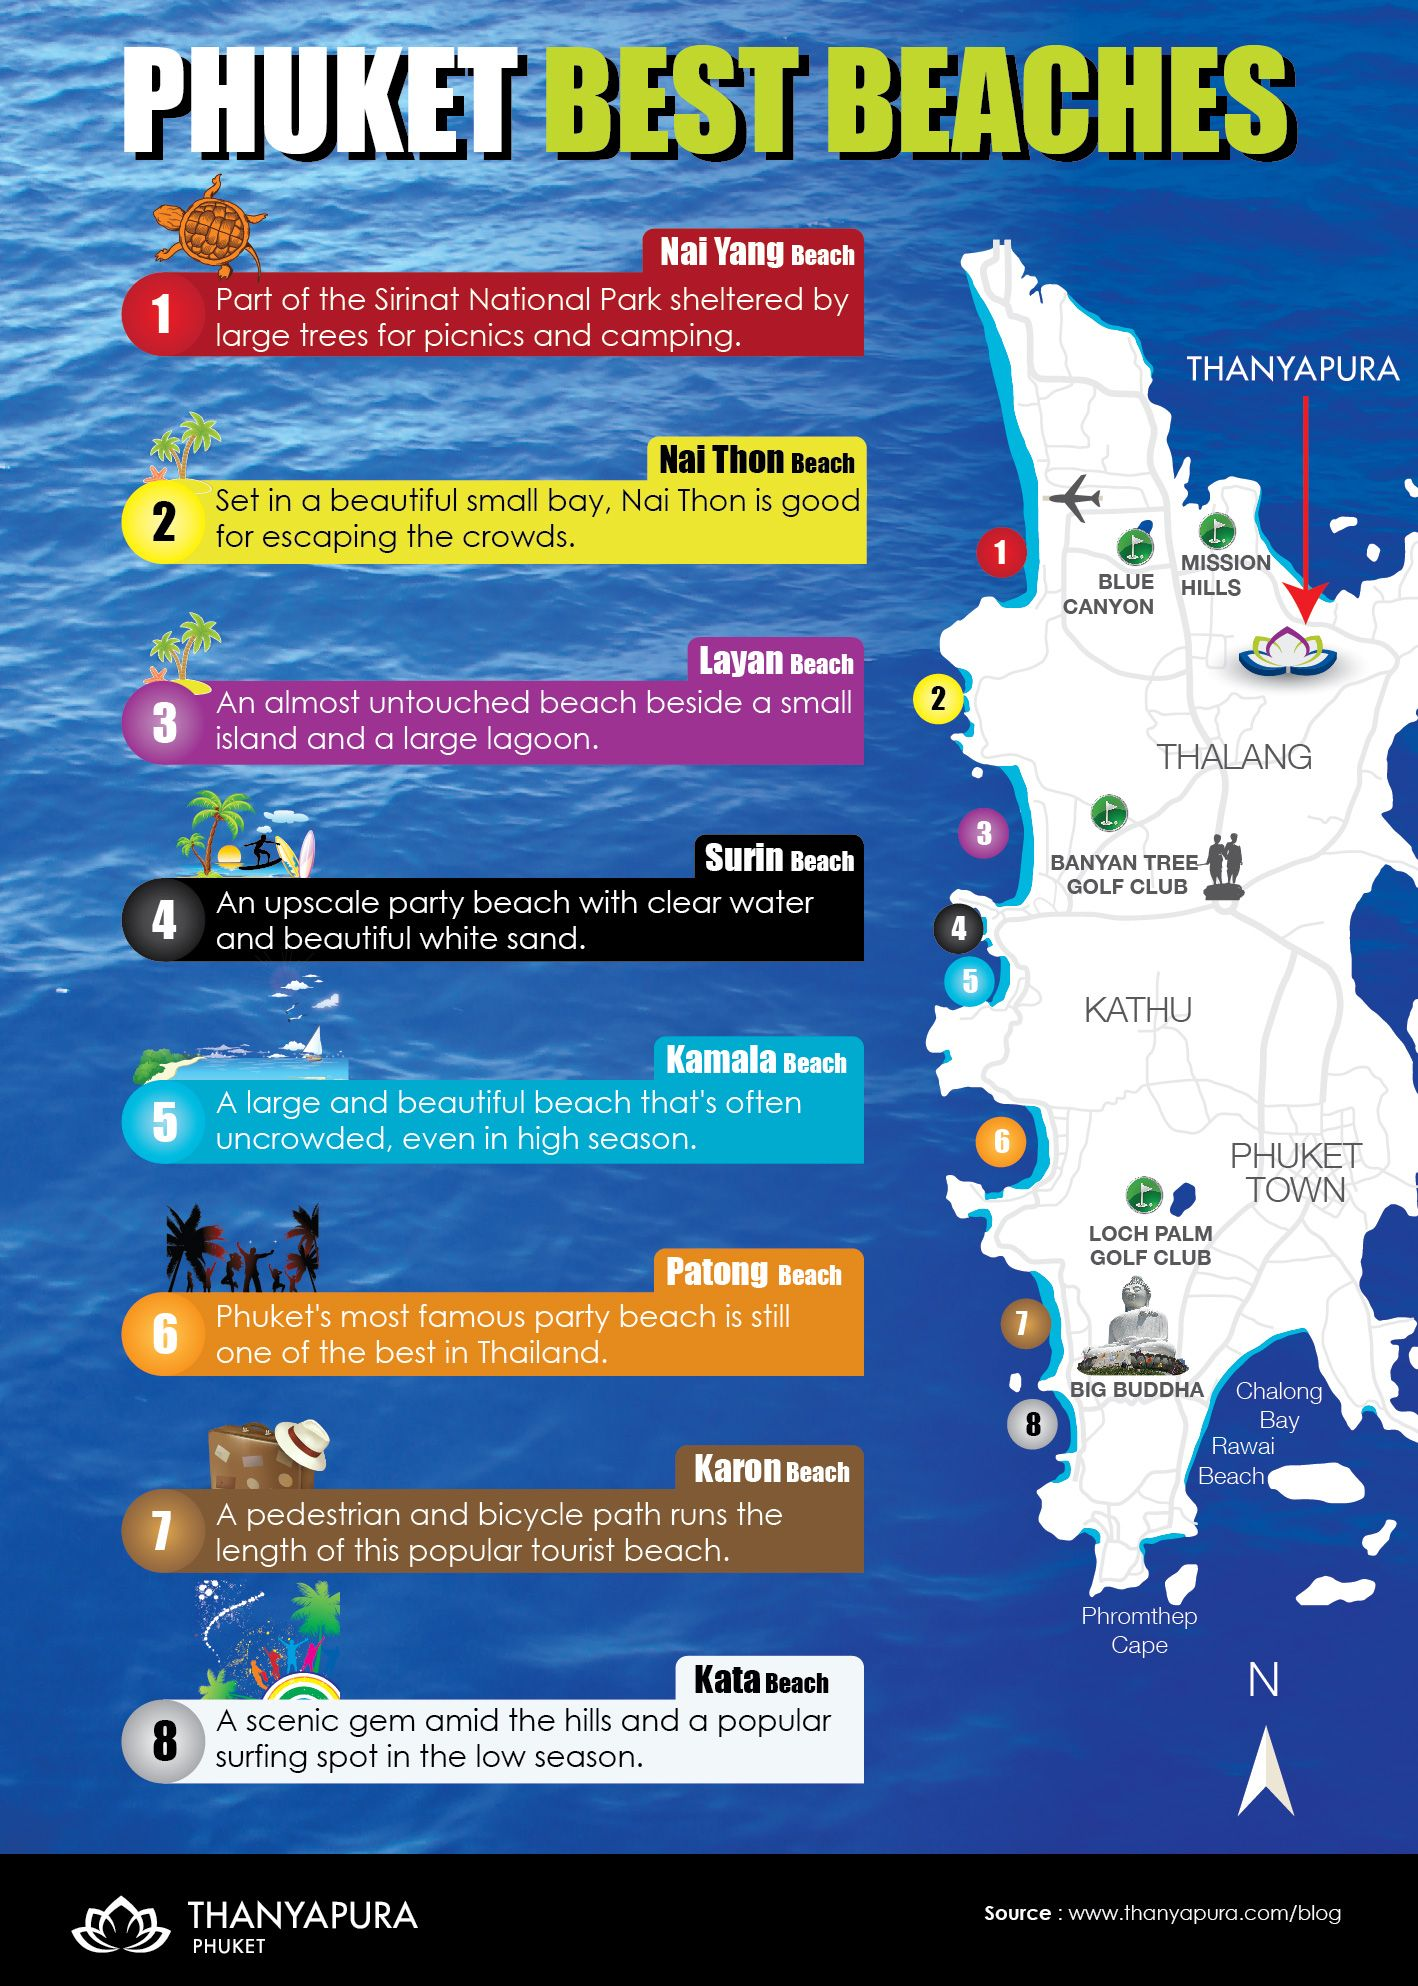 The Best Beaches in Phuket Thailand Infographic and Photo Gallery